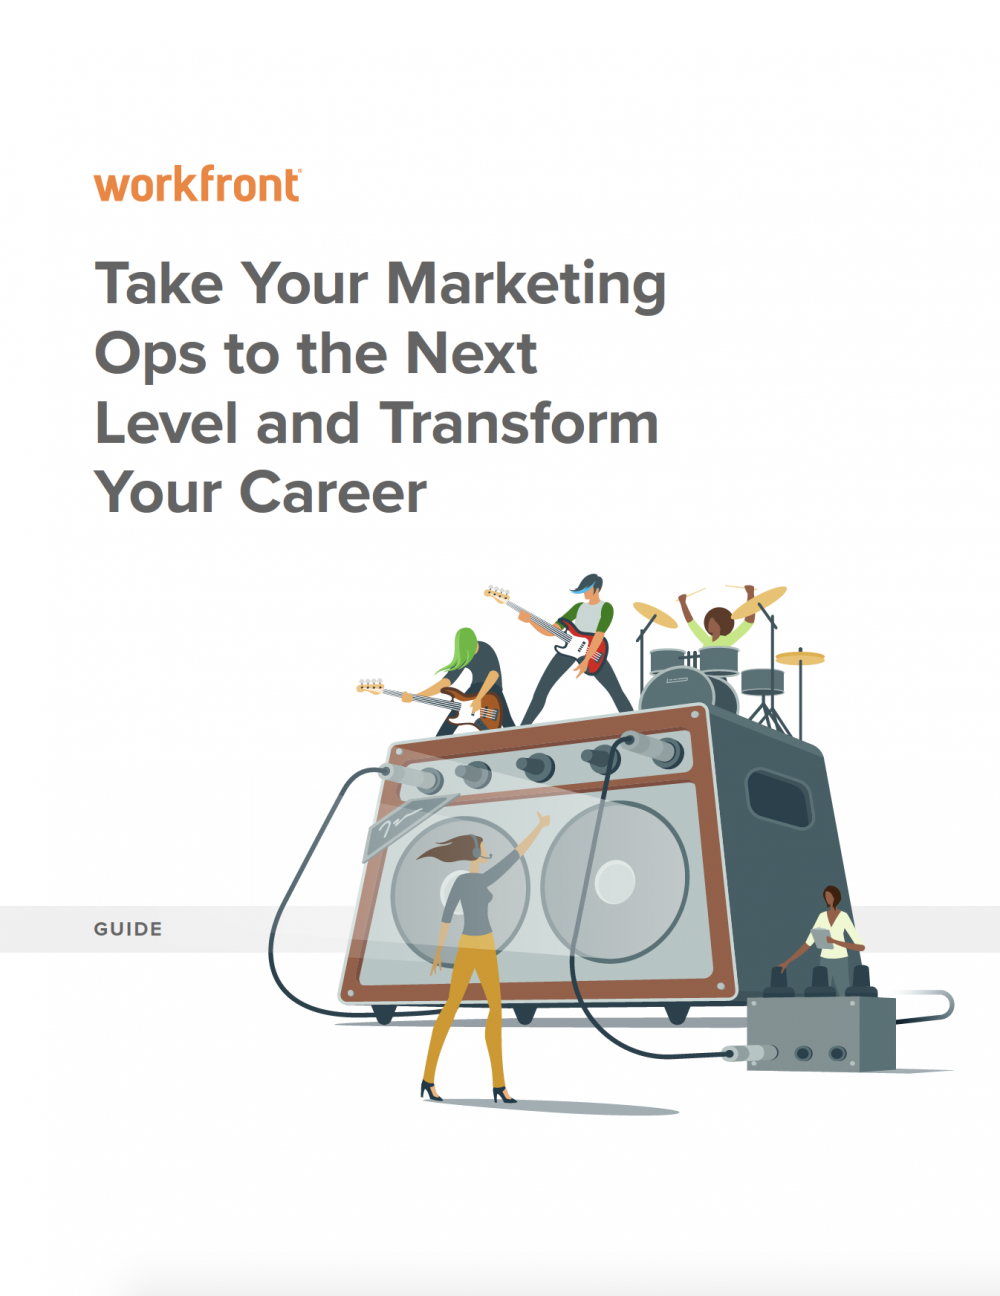 Take Your Marketing Ops to the Next Level and Transform Your Career